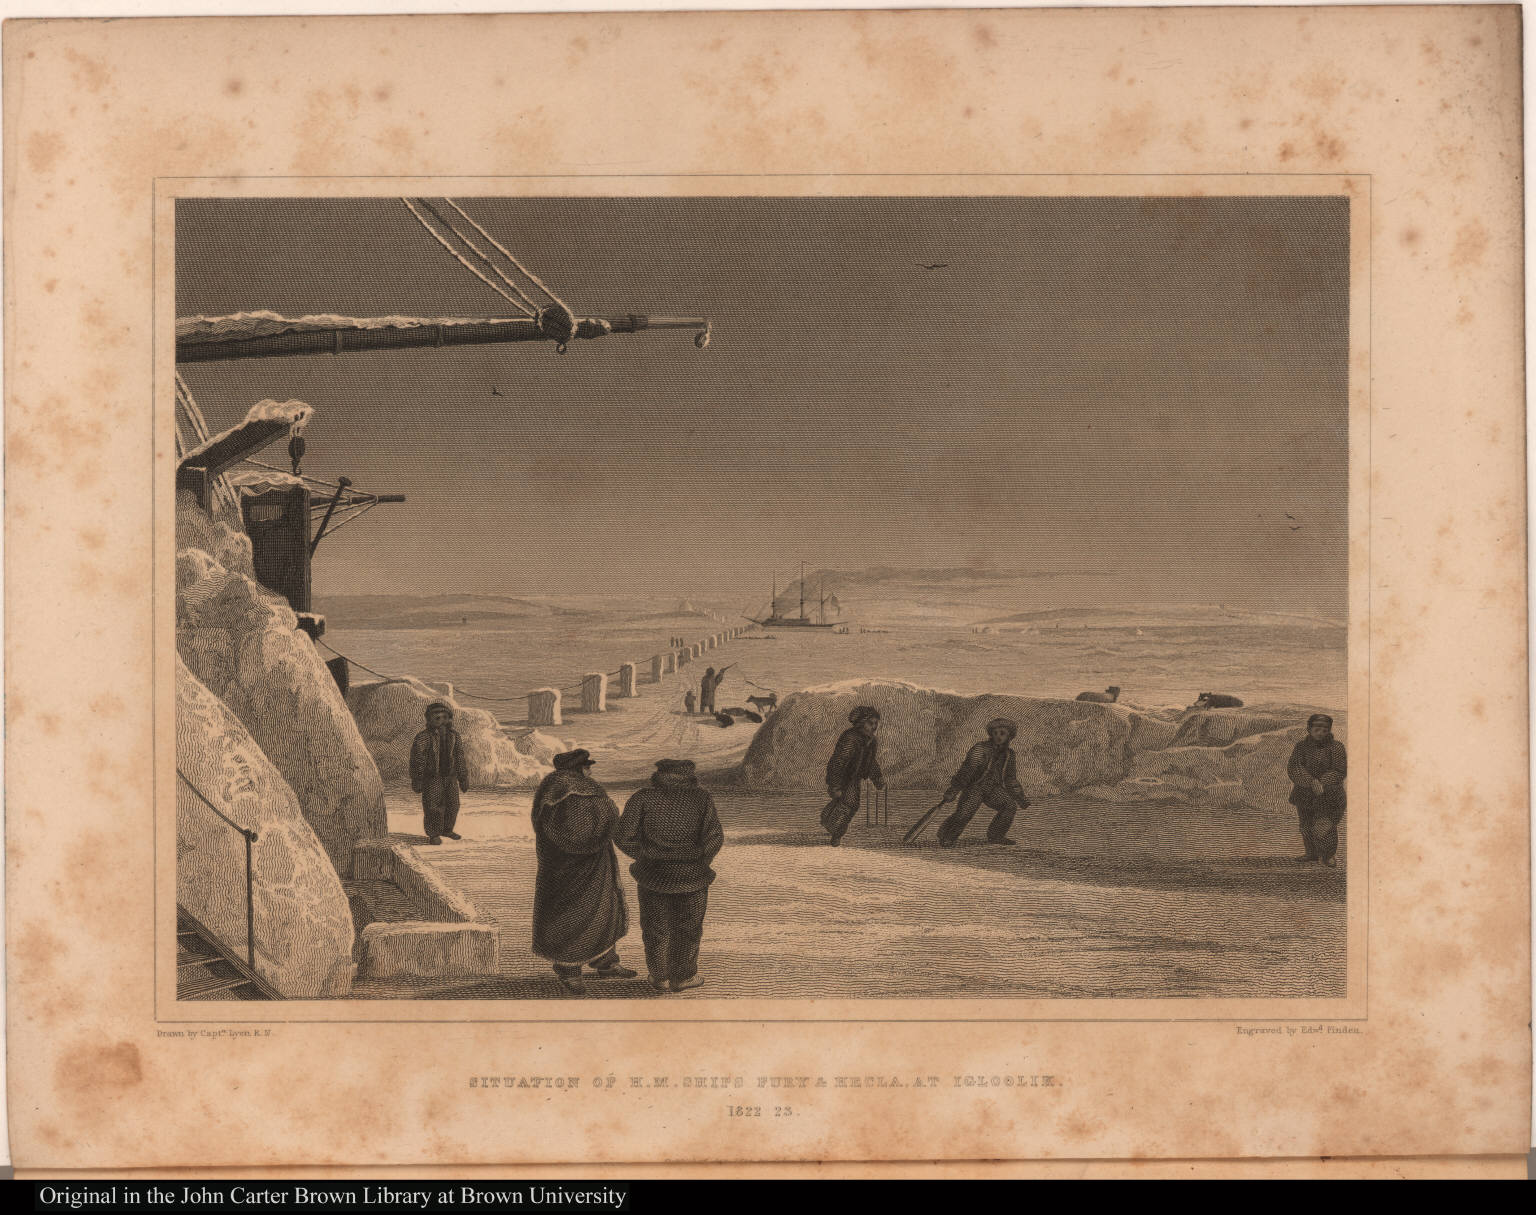 Situation of H. M. Ships Fury & Hecla, at Igloolik. 1822 23.